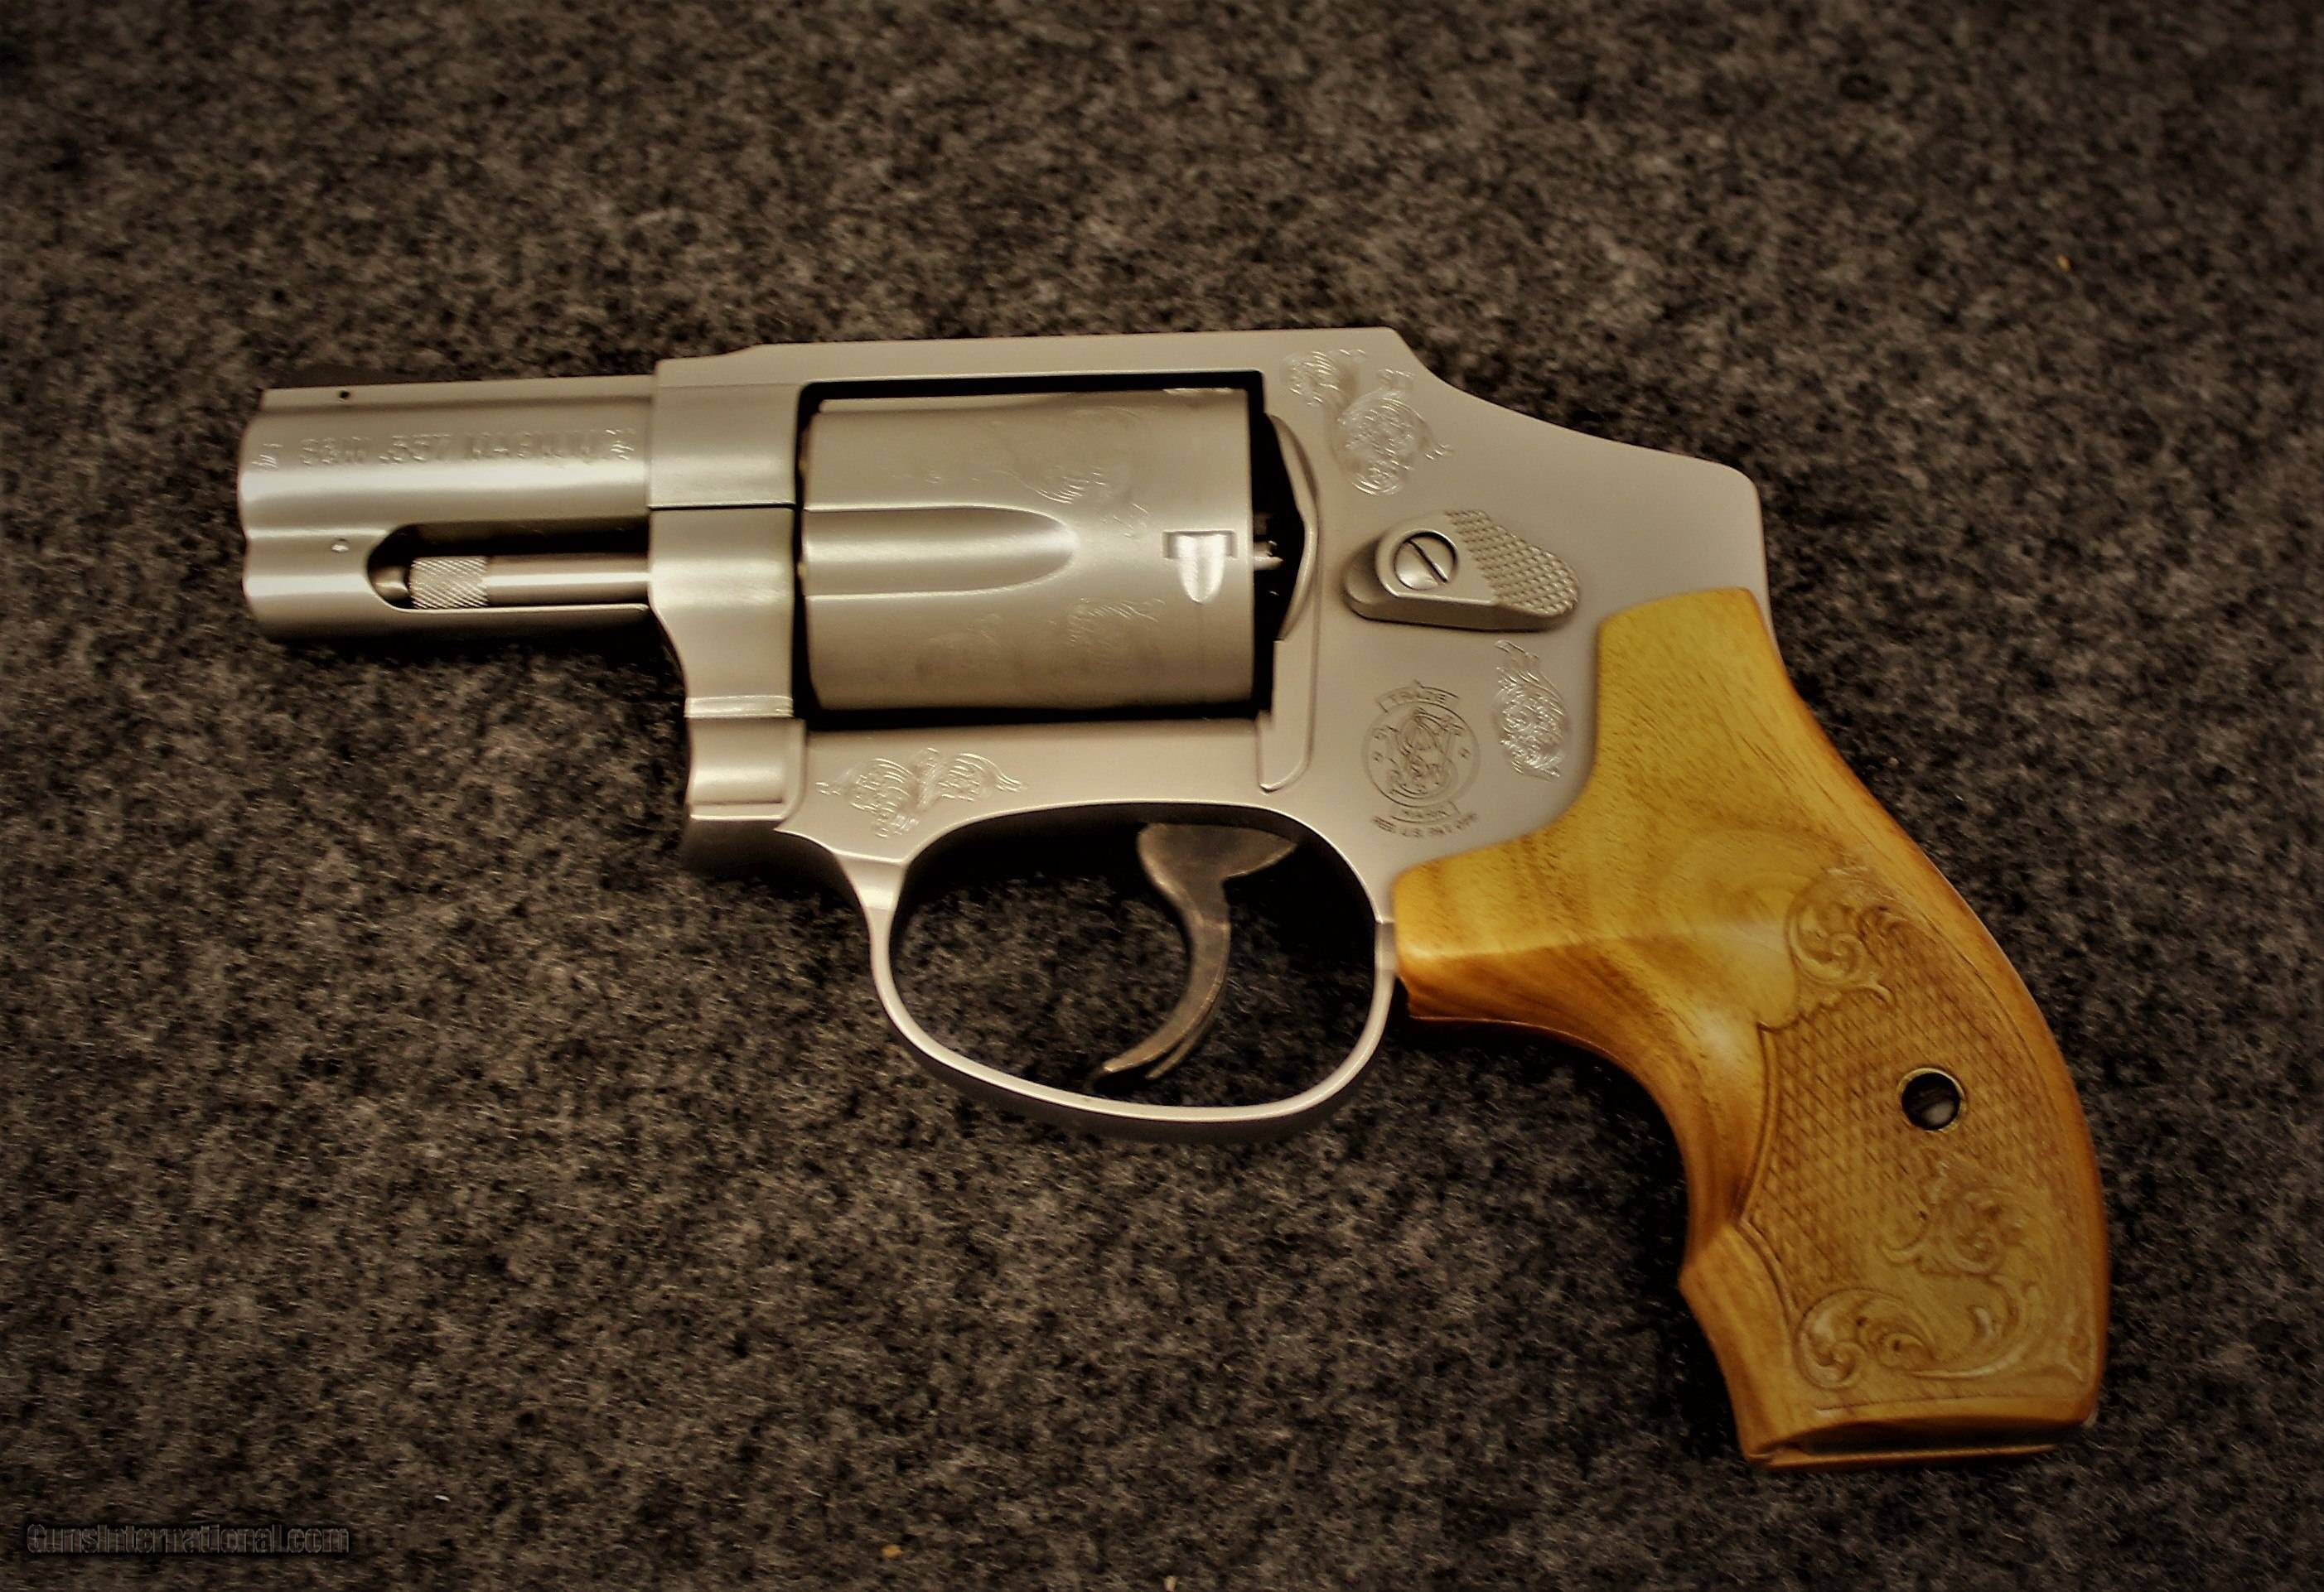 Smith & wesson model 27 - smith & wesson model 27